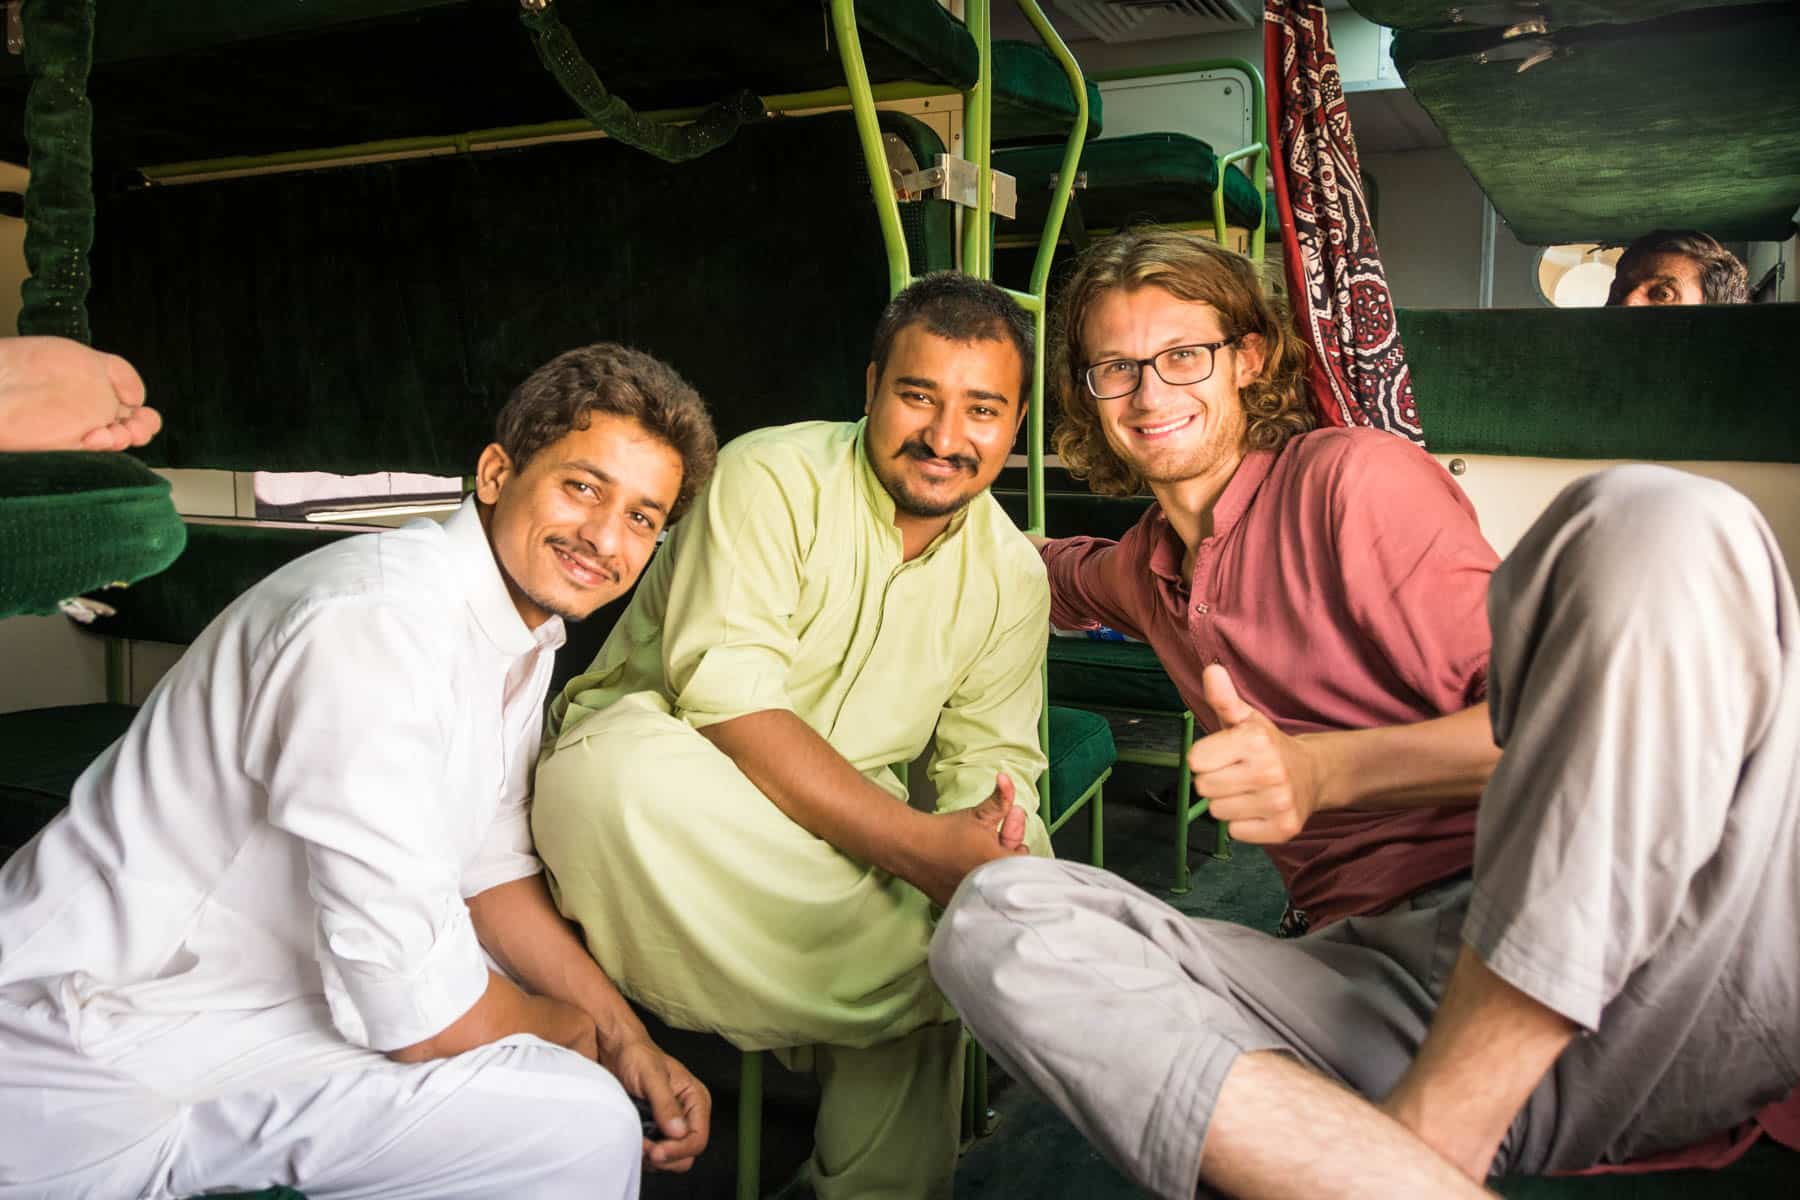 Guide to train travel in Pakistan - Making friends on the train - Lost With Purpose travel blog